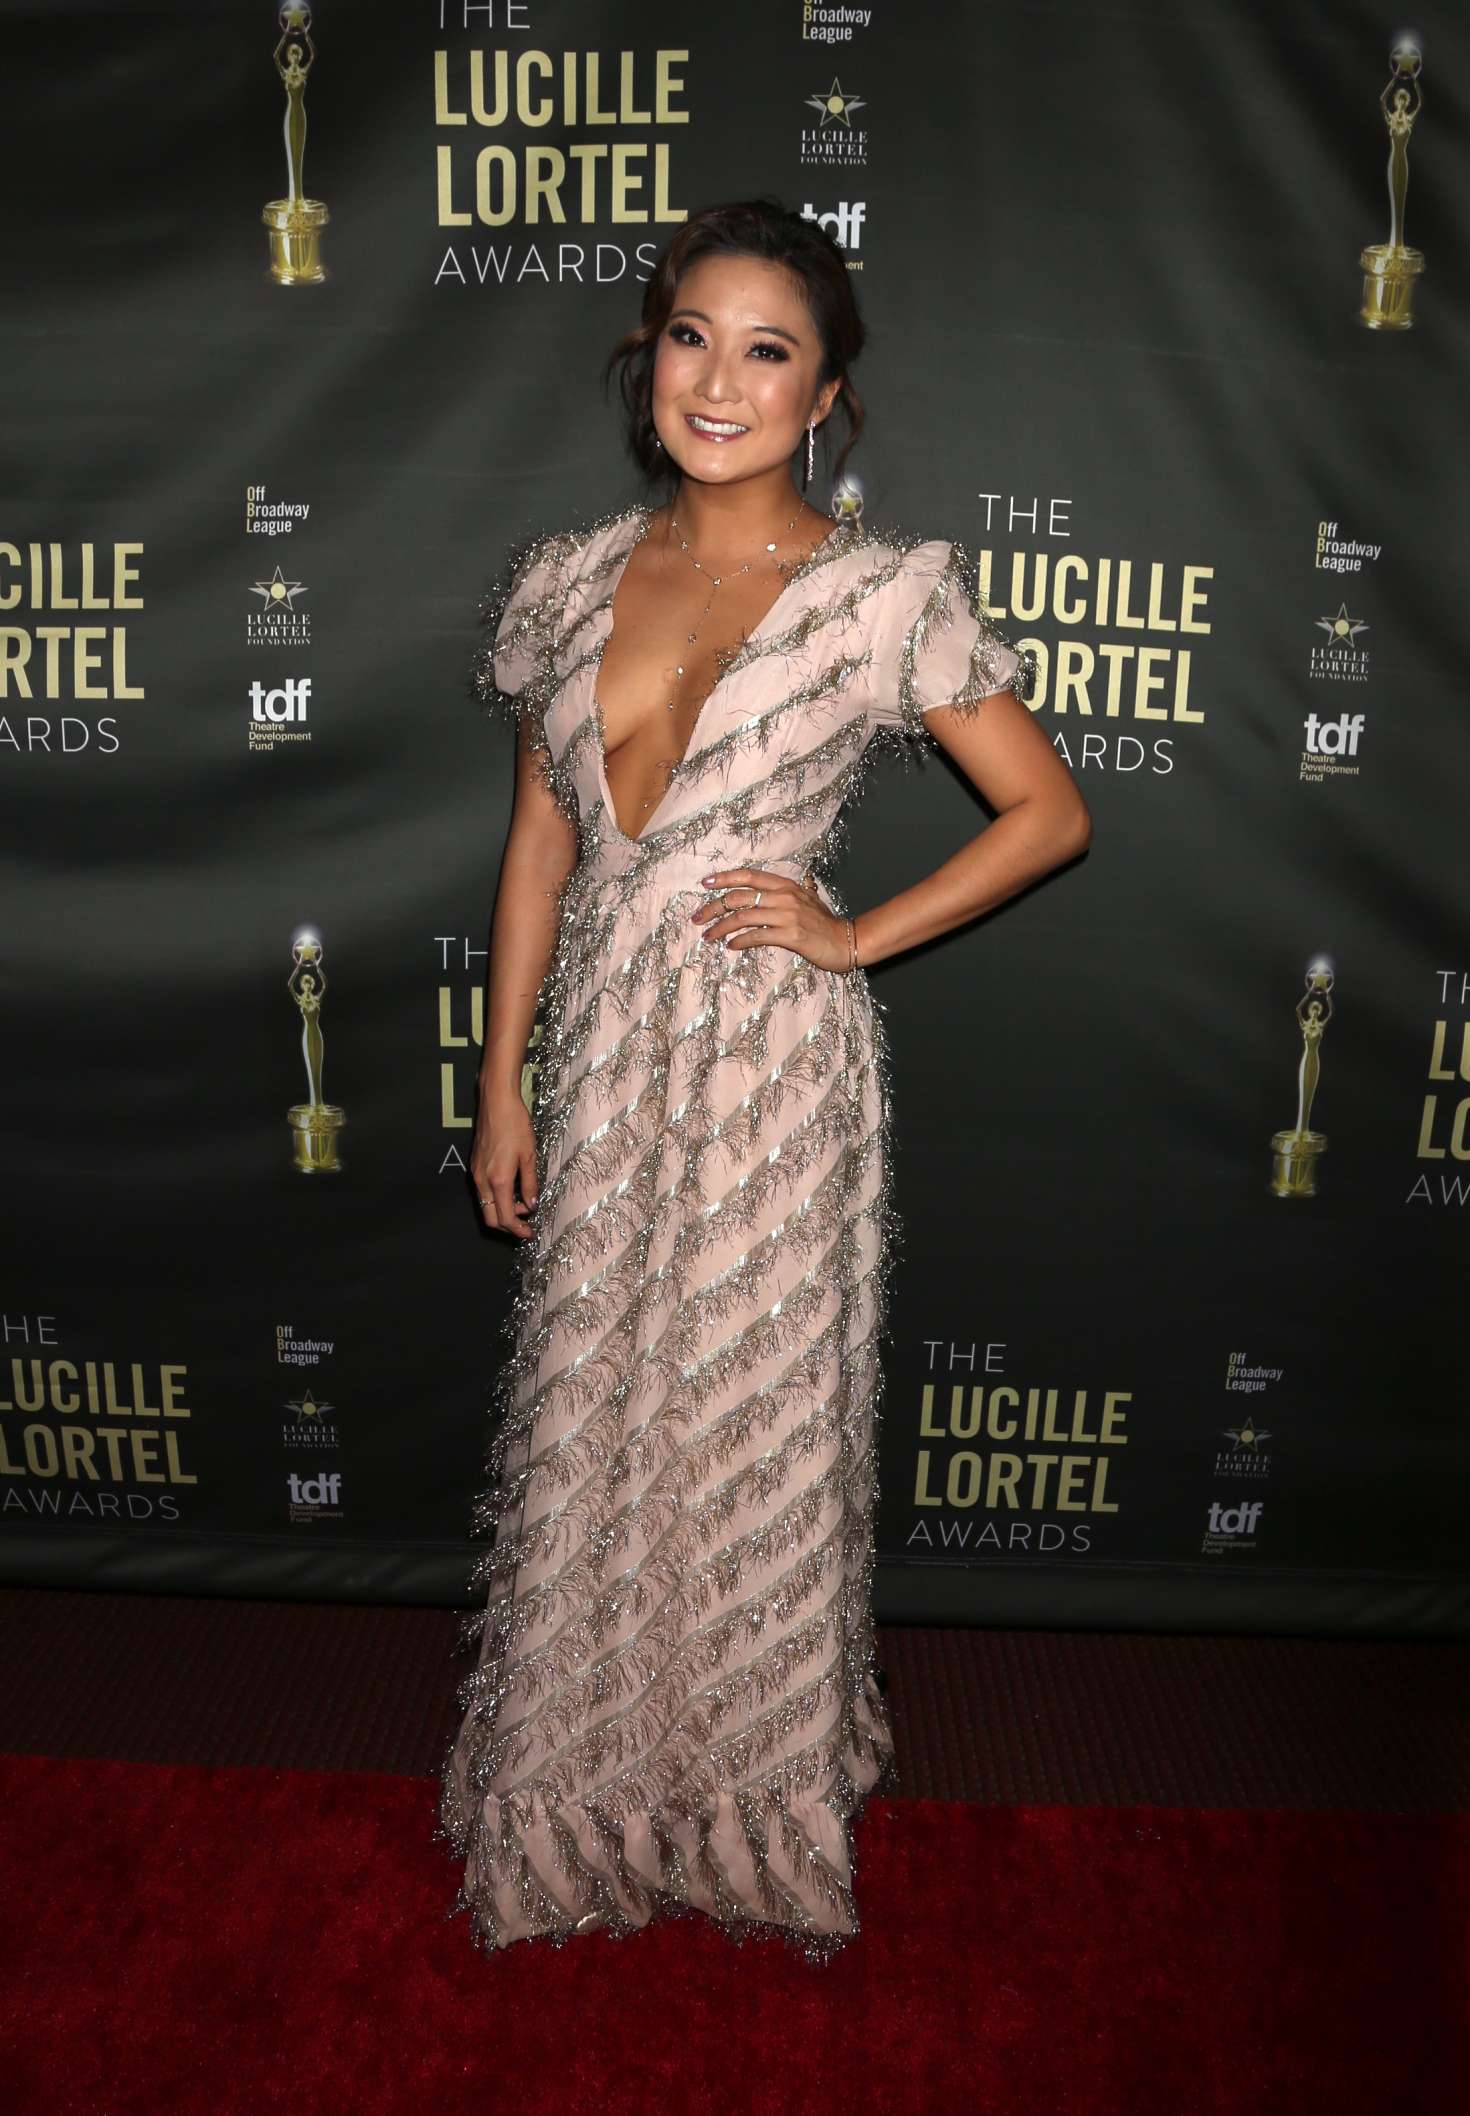 Image result for 2018 lucille lortel awards ashley park